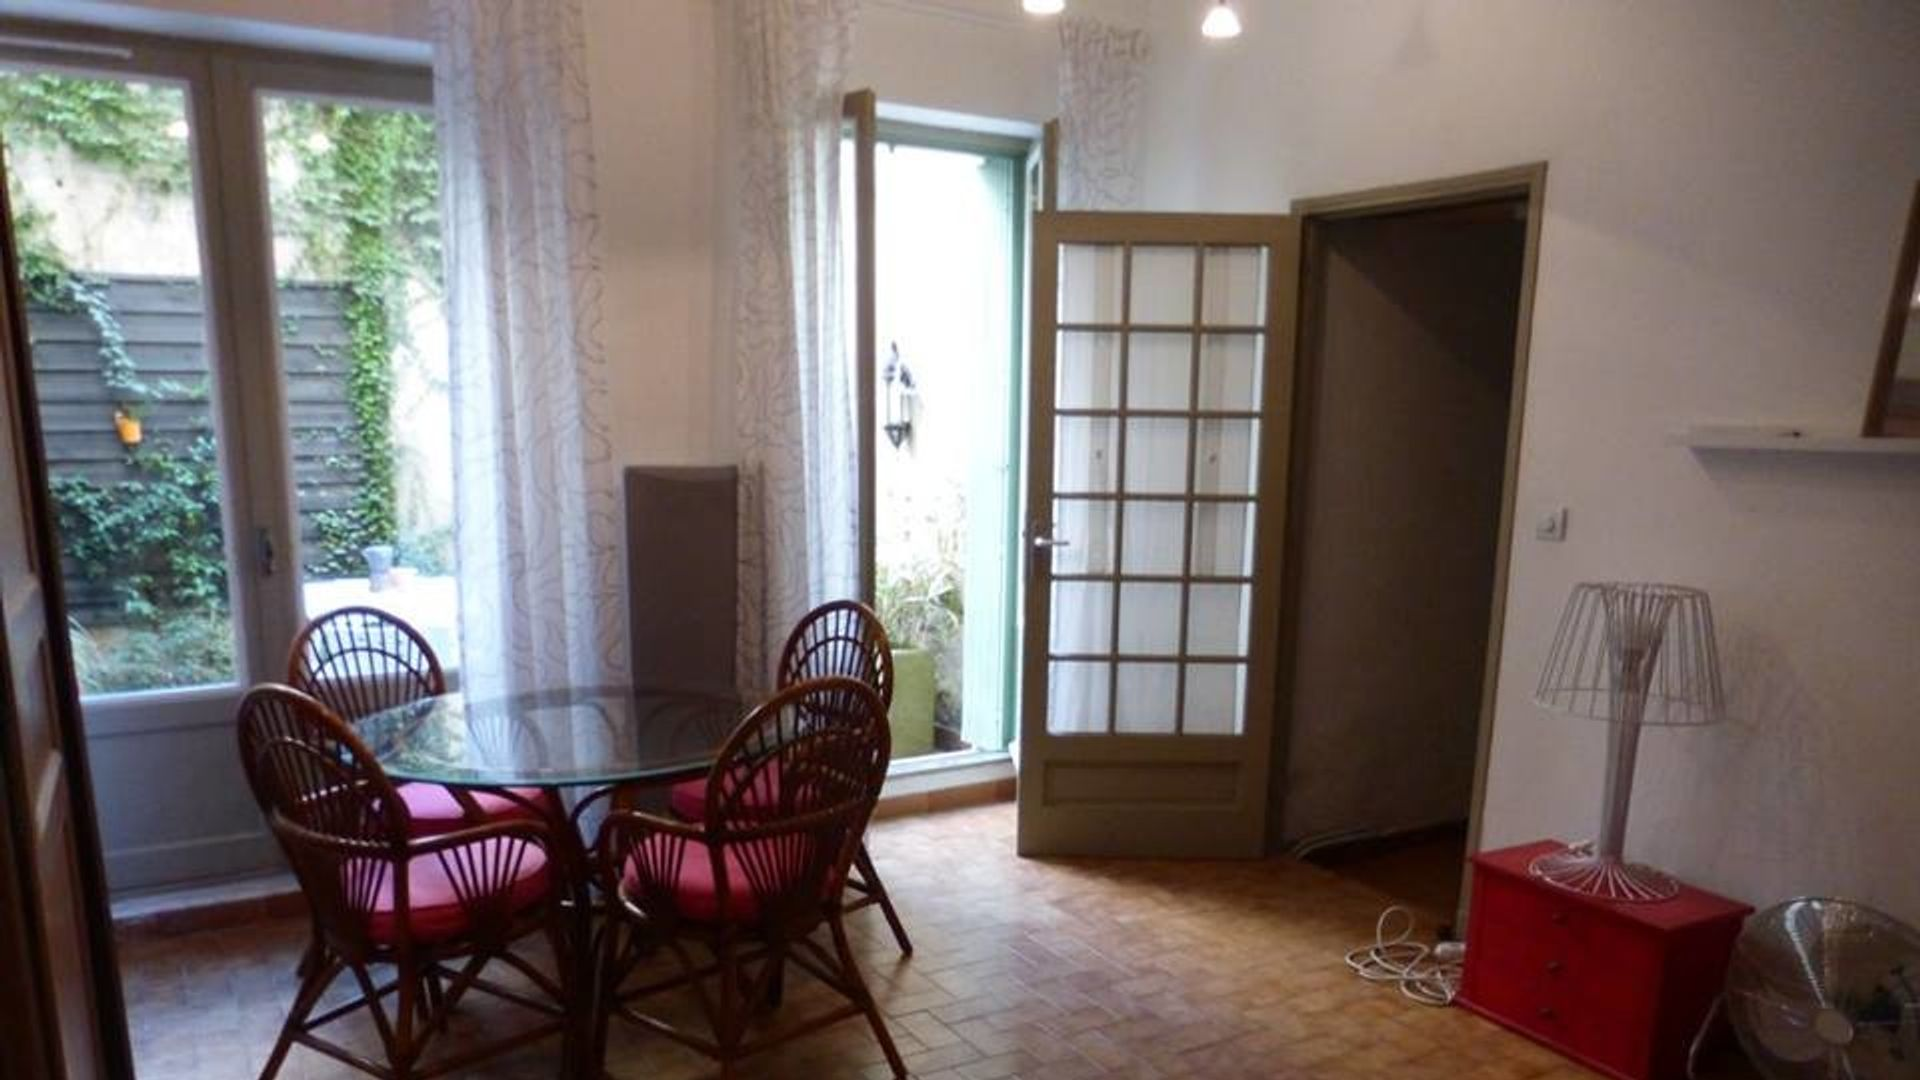 Canape Avignon Salon Center Room In 2 Bed Apt At Ostéopathie Marie Jacquart 6 Rue D